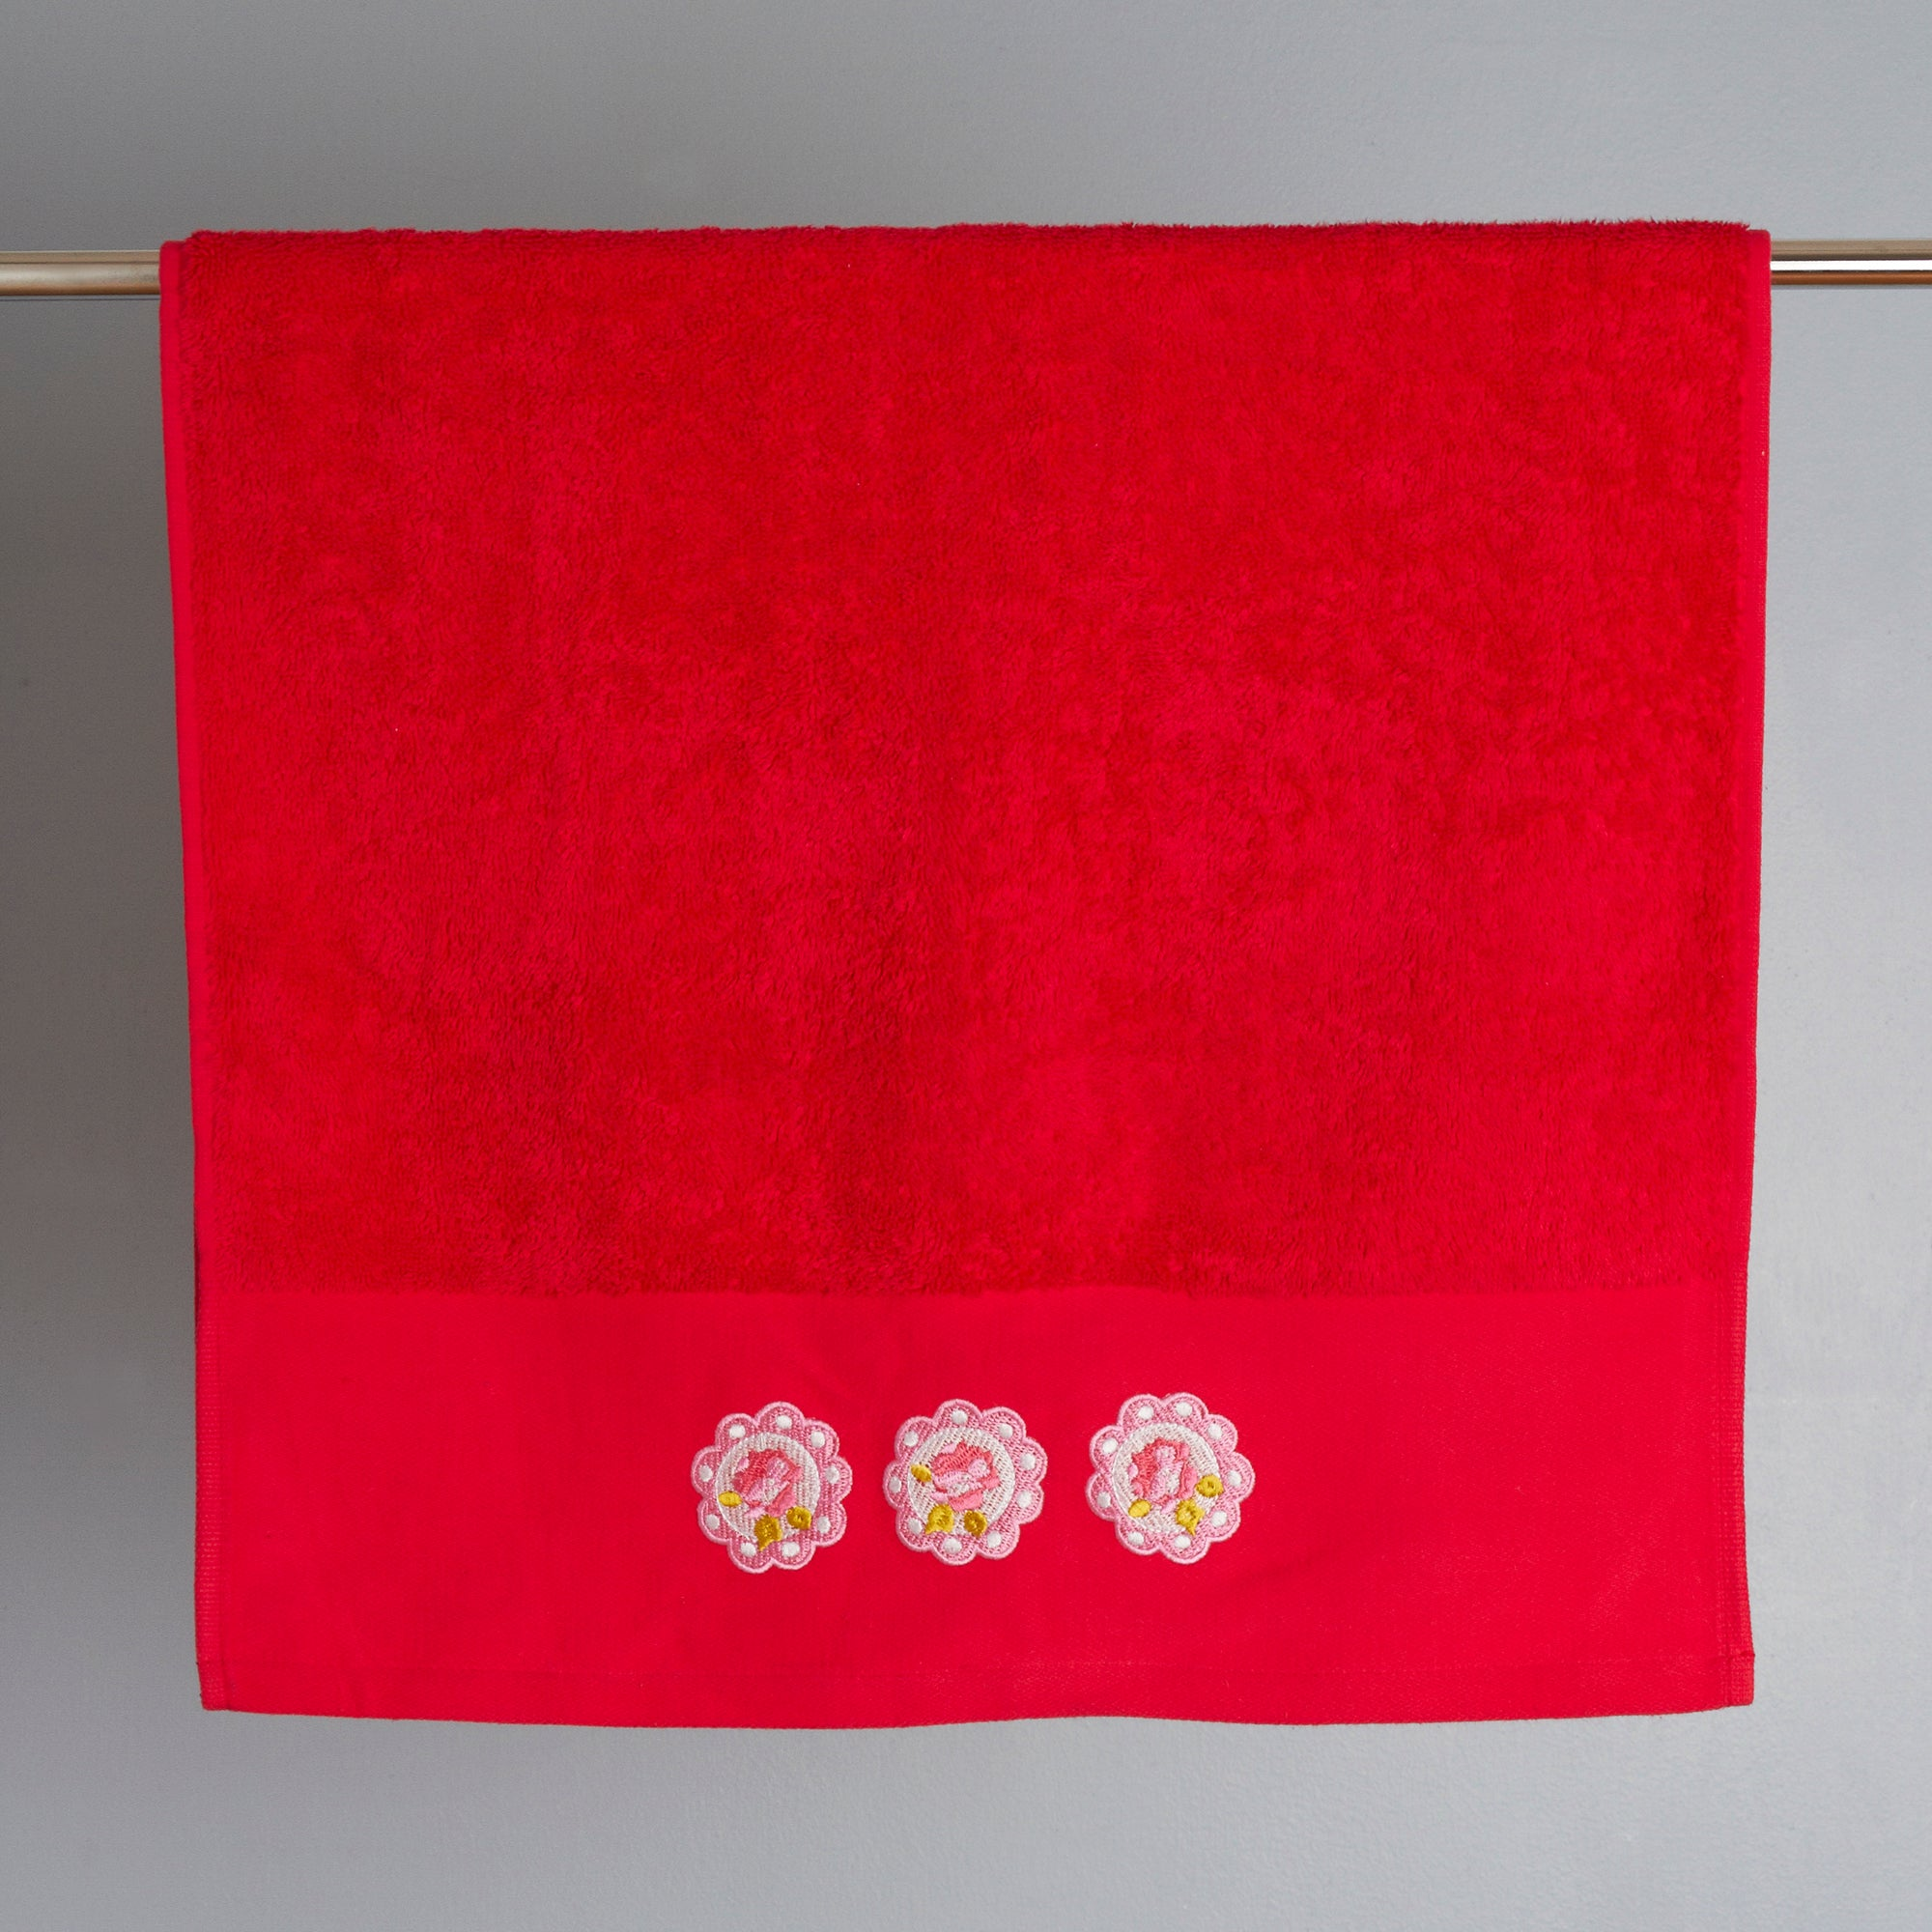 Rose and Ellis Allexton Collection Hand Towel